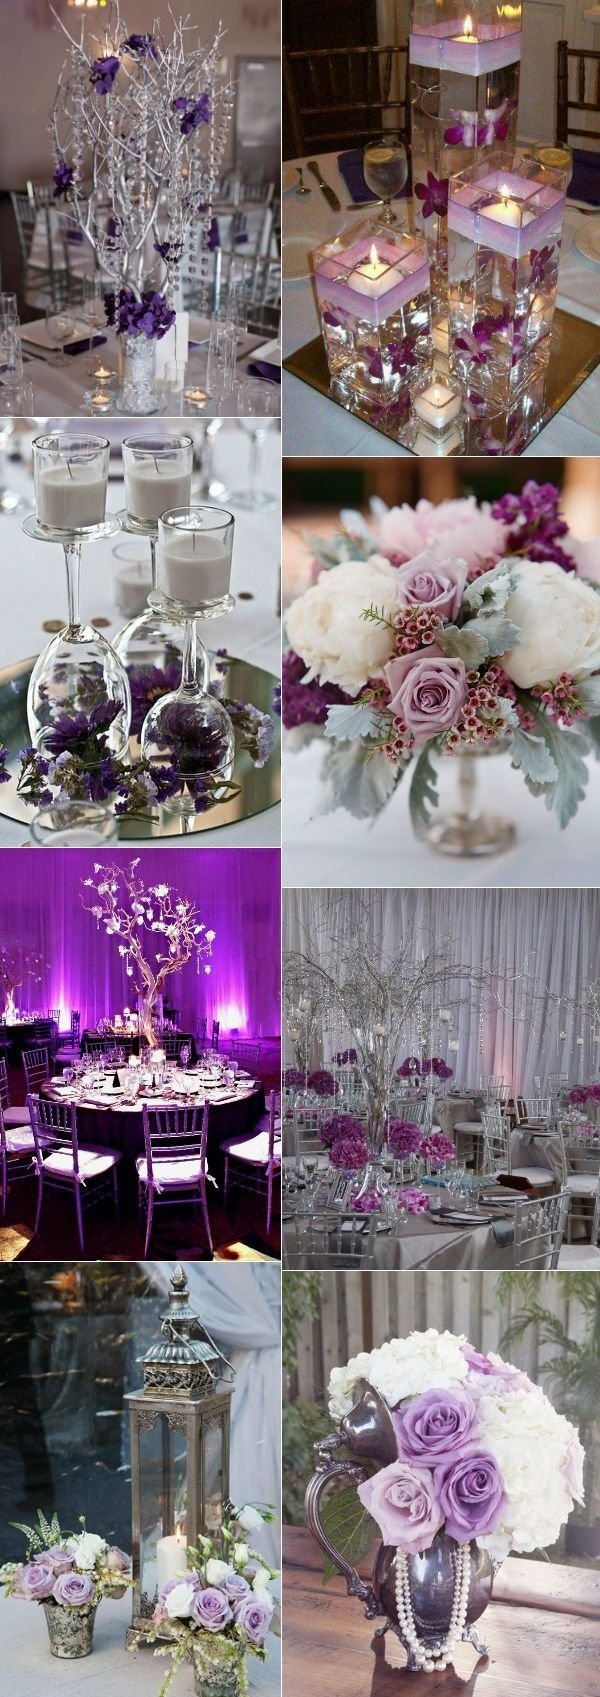 10 Fabulous Purple And Silver Wedding Ideas stunning wedding color ideas in shades of purple and silver silver